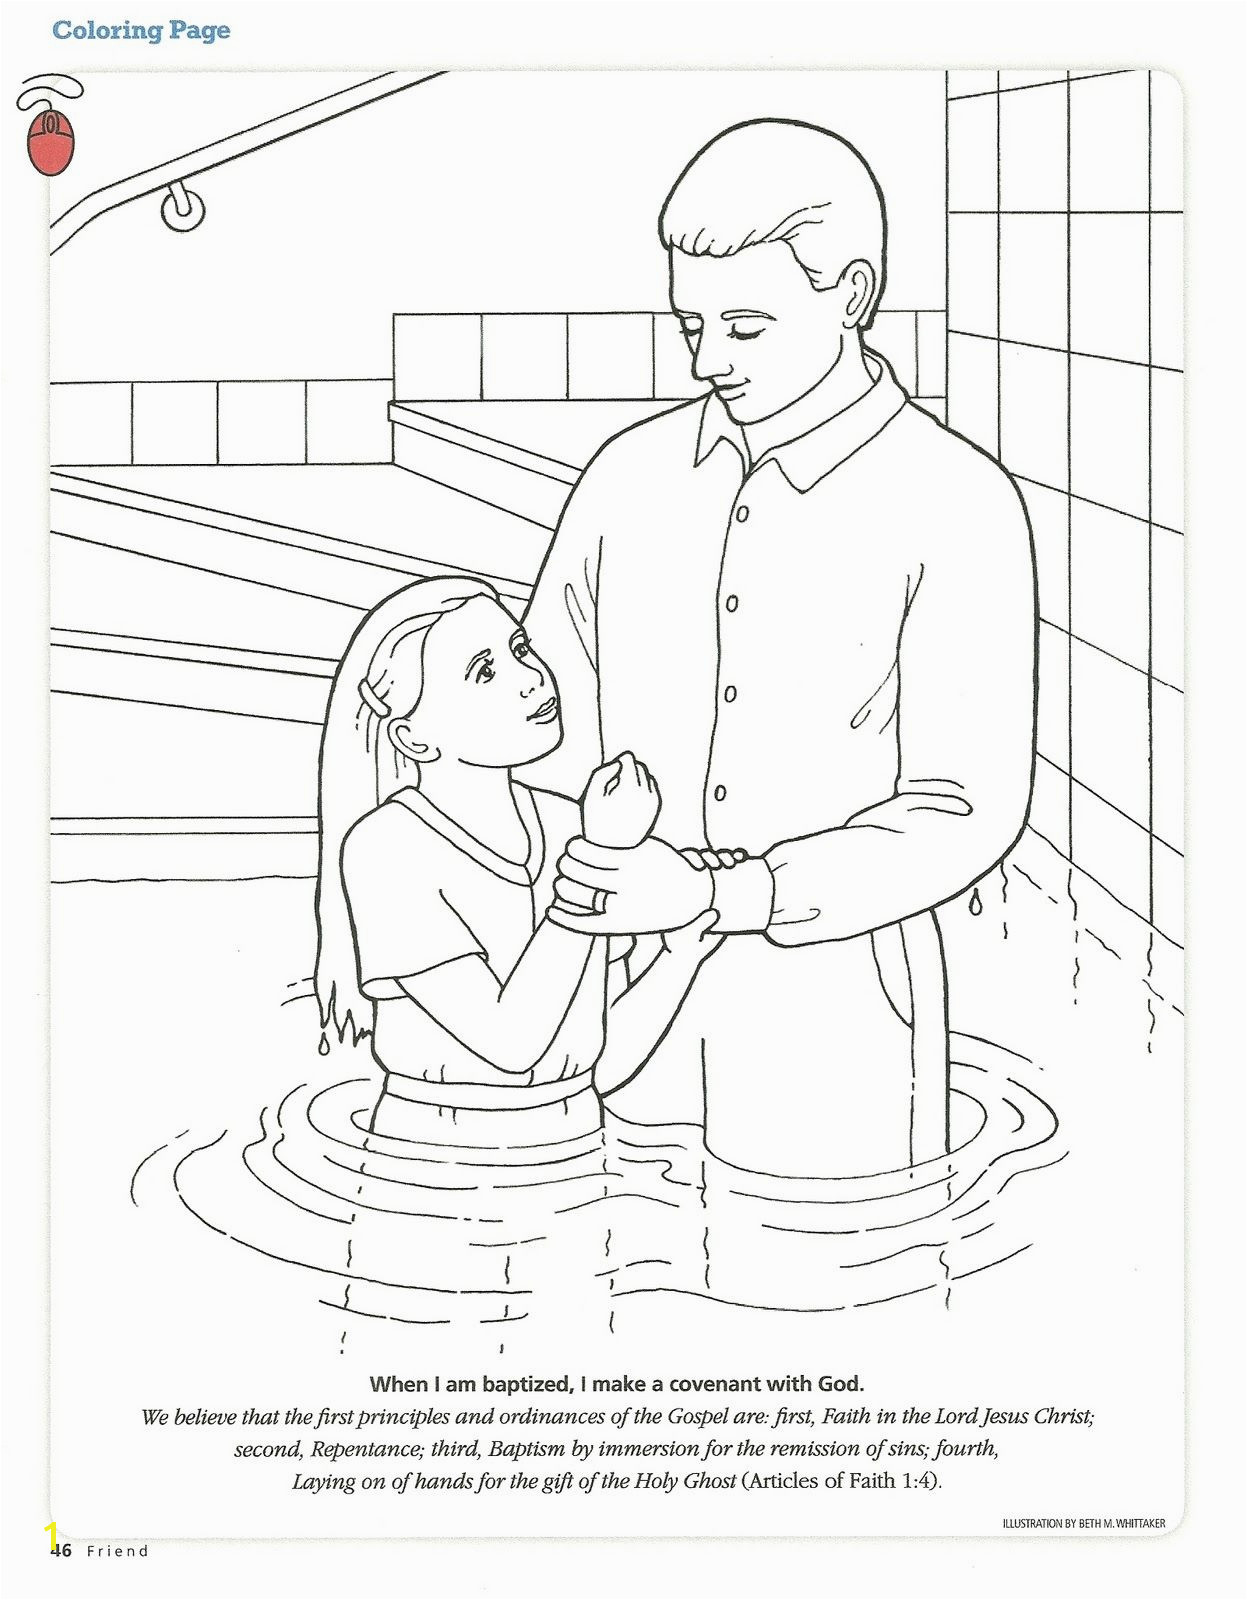 Helping others coloring pages